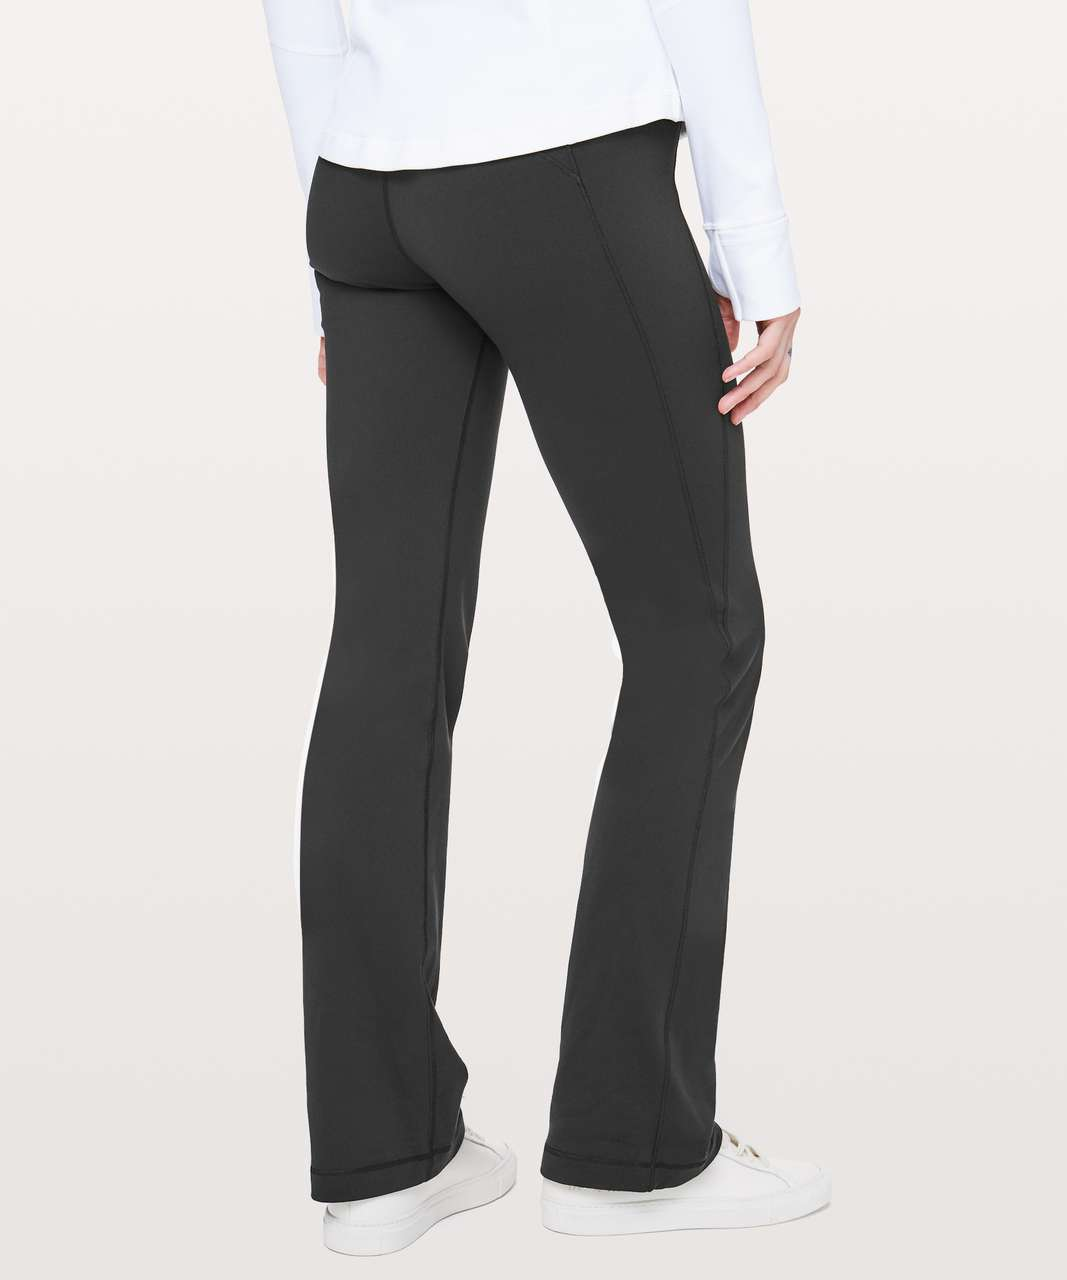 """Lululemon Groove Pant Bootcut 32"""" - Black (First Release)"""